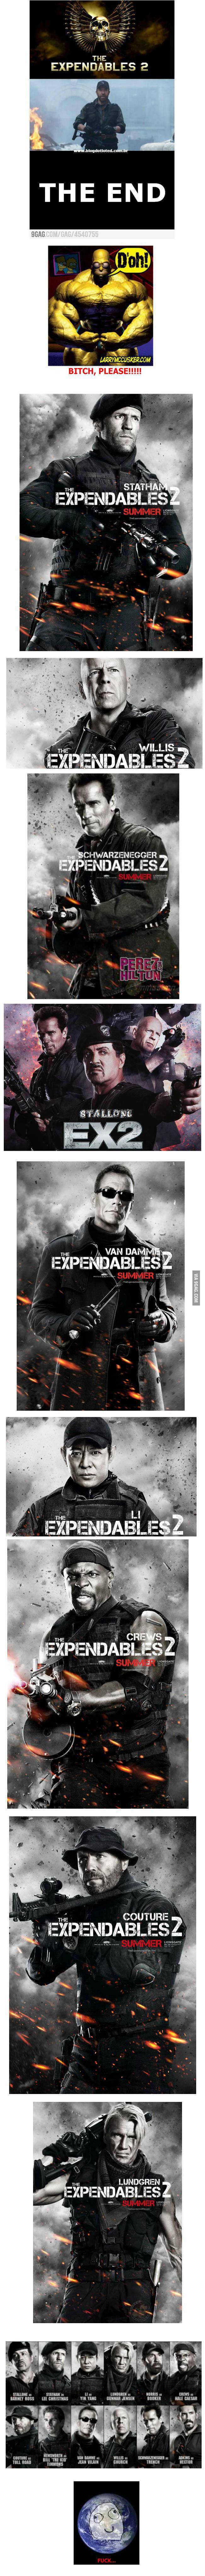 The Expendables 2 Cast...